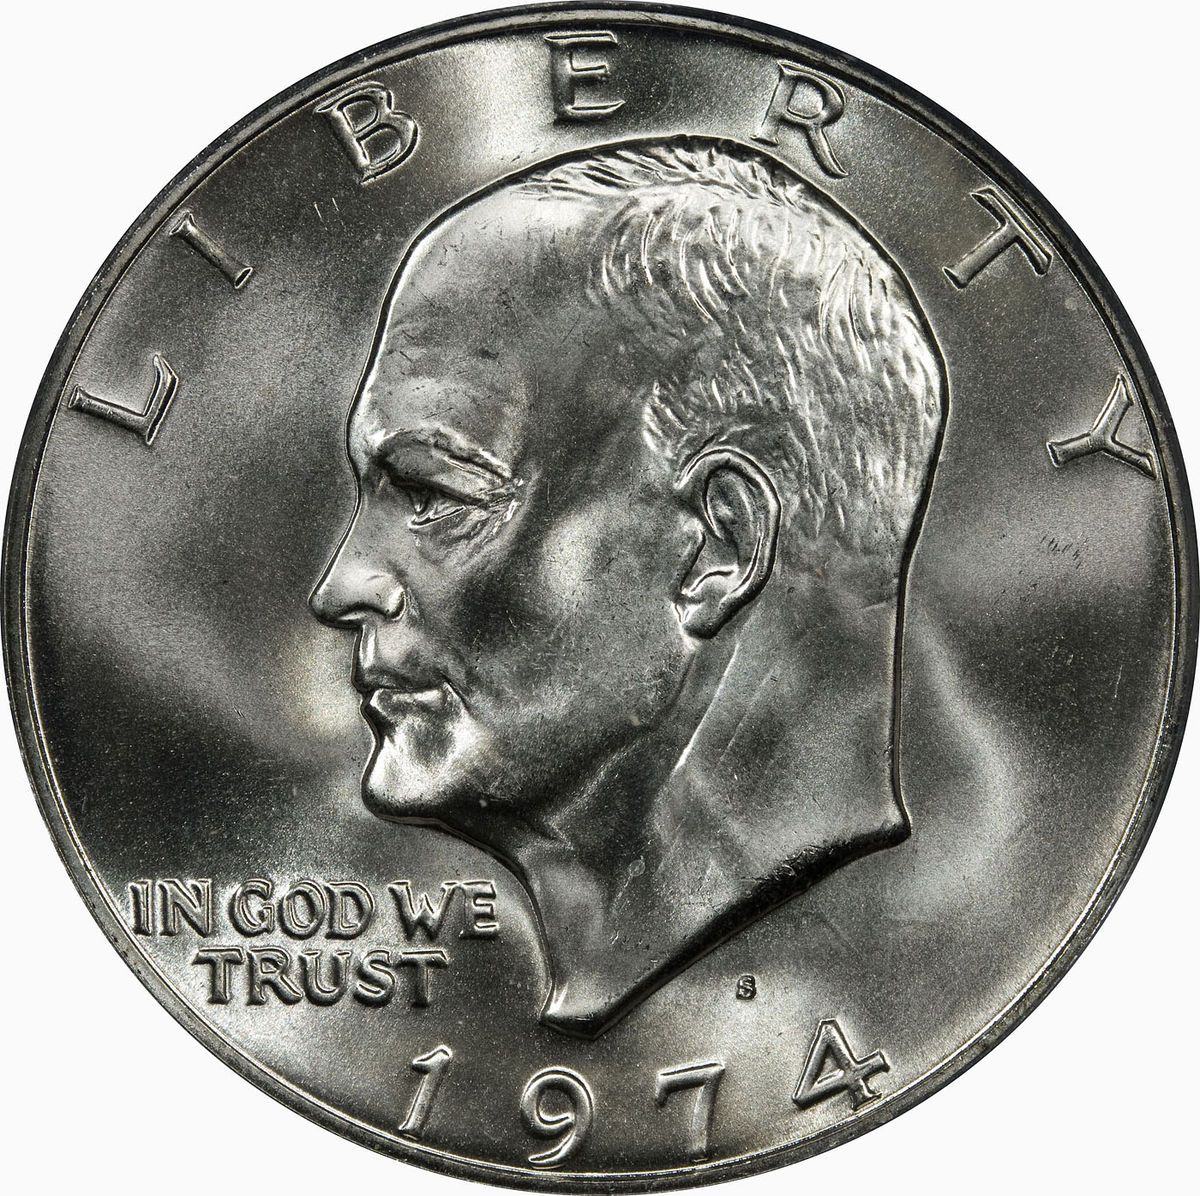 a29ebcca6655 Eisenhower dollar - Wikipedia